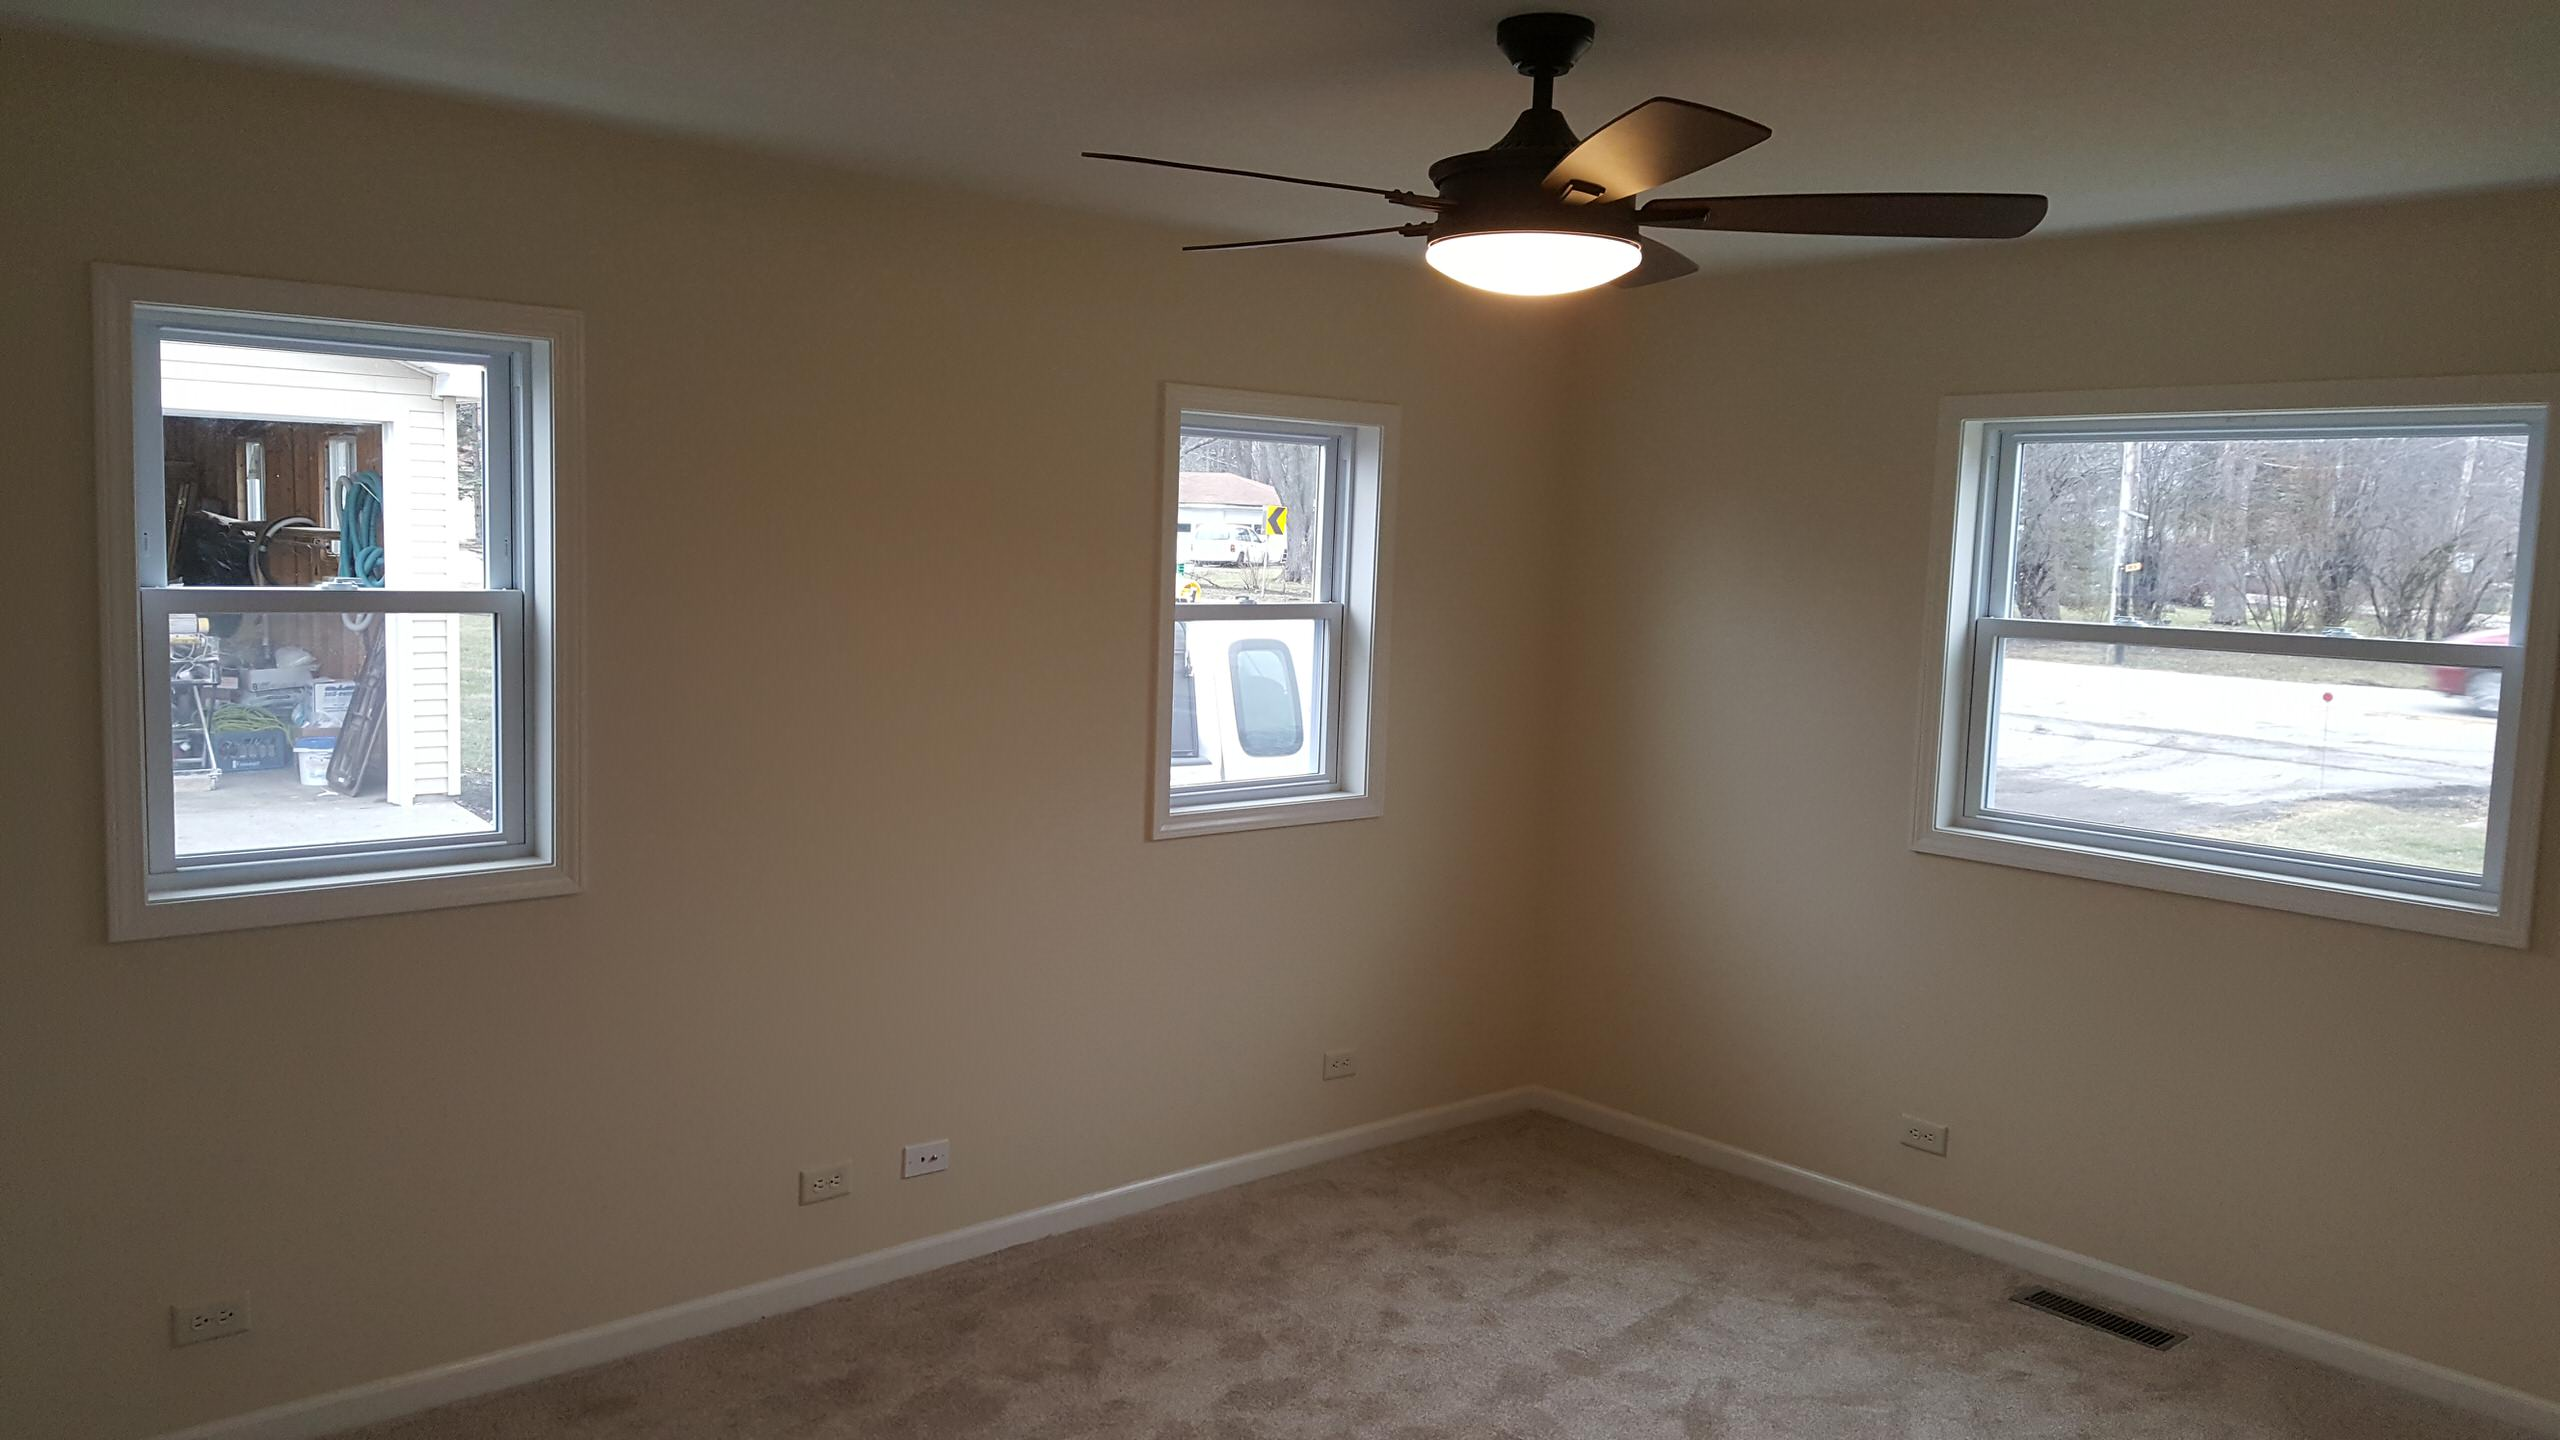 Finished room after full house gut